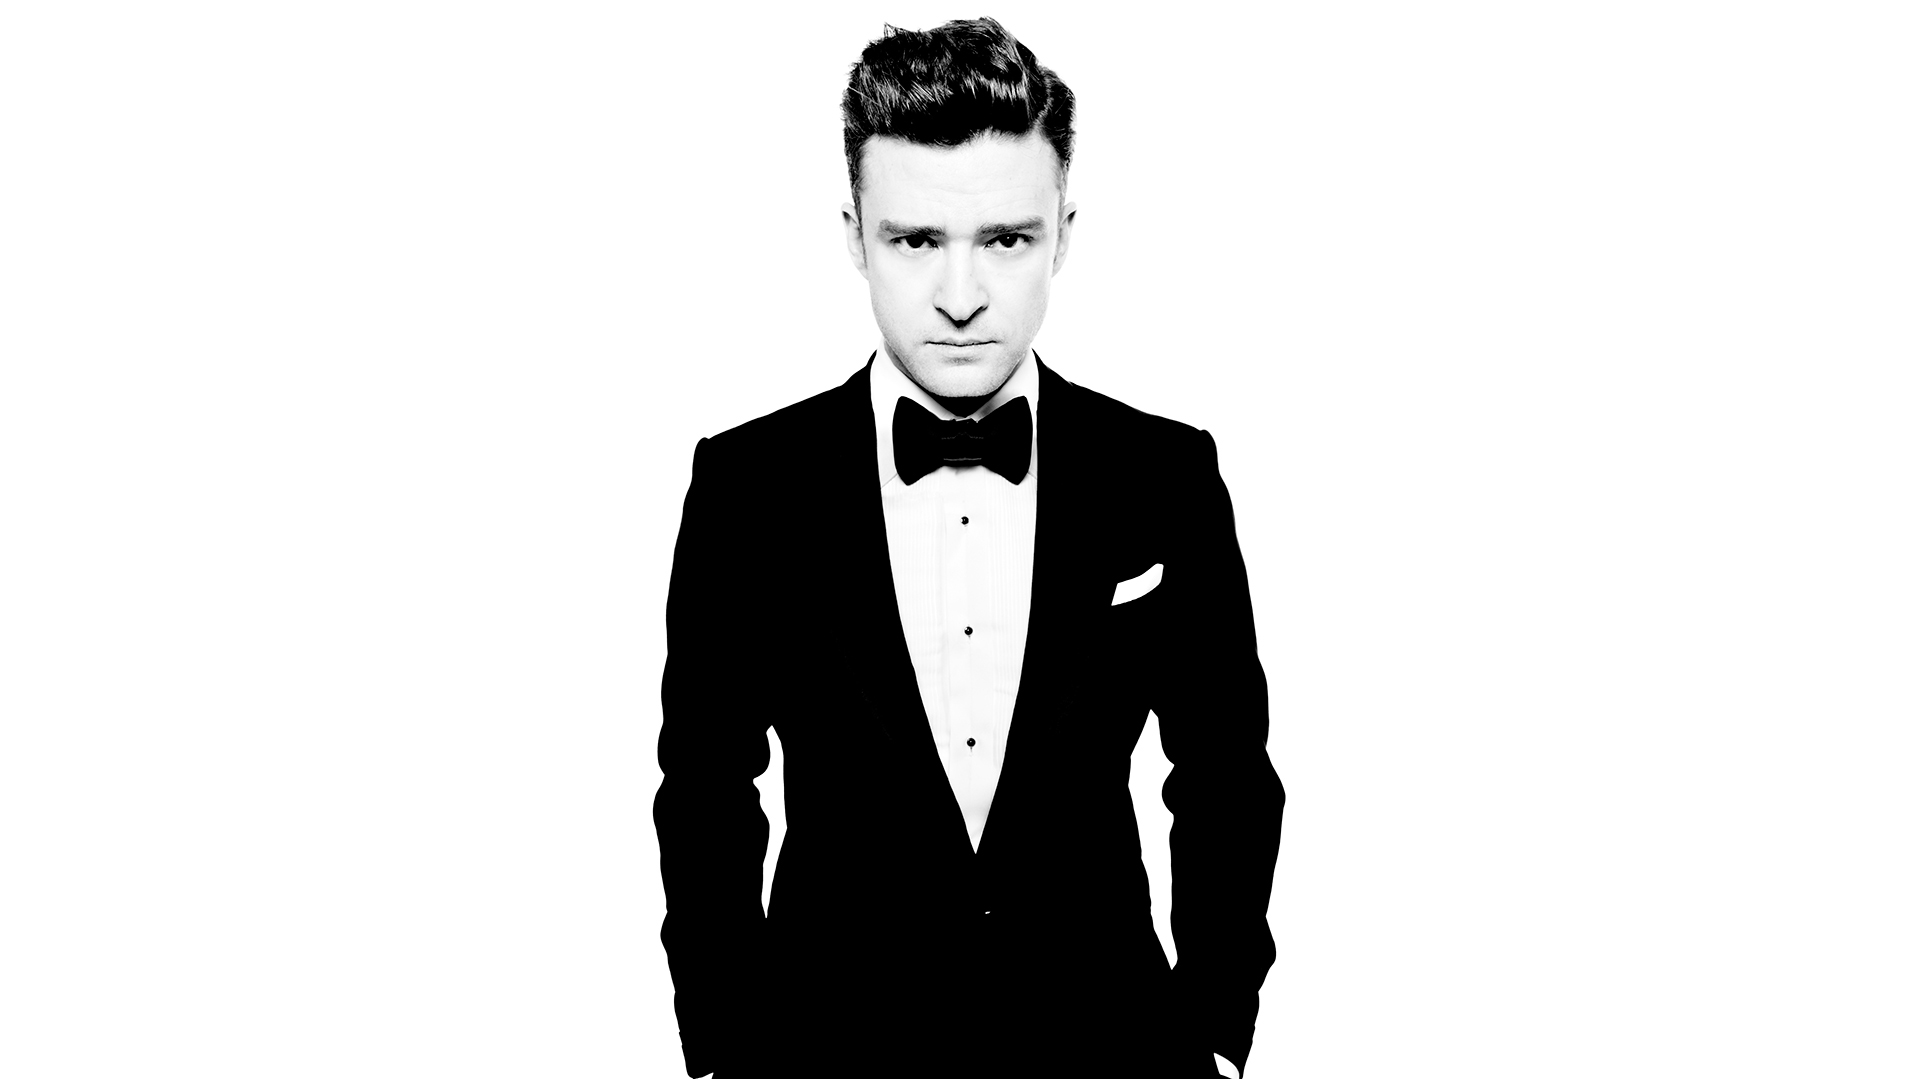 Justin Timberlake's new album, The 20/20 Experience, is out now. (Courtesy of the artist)